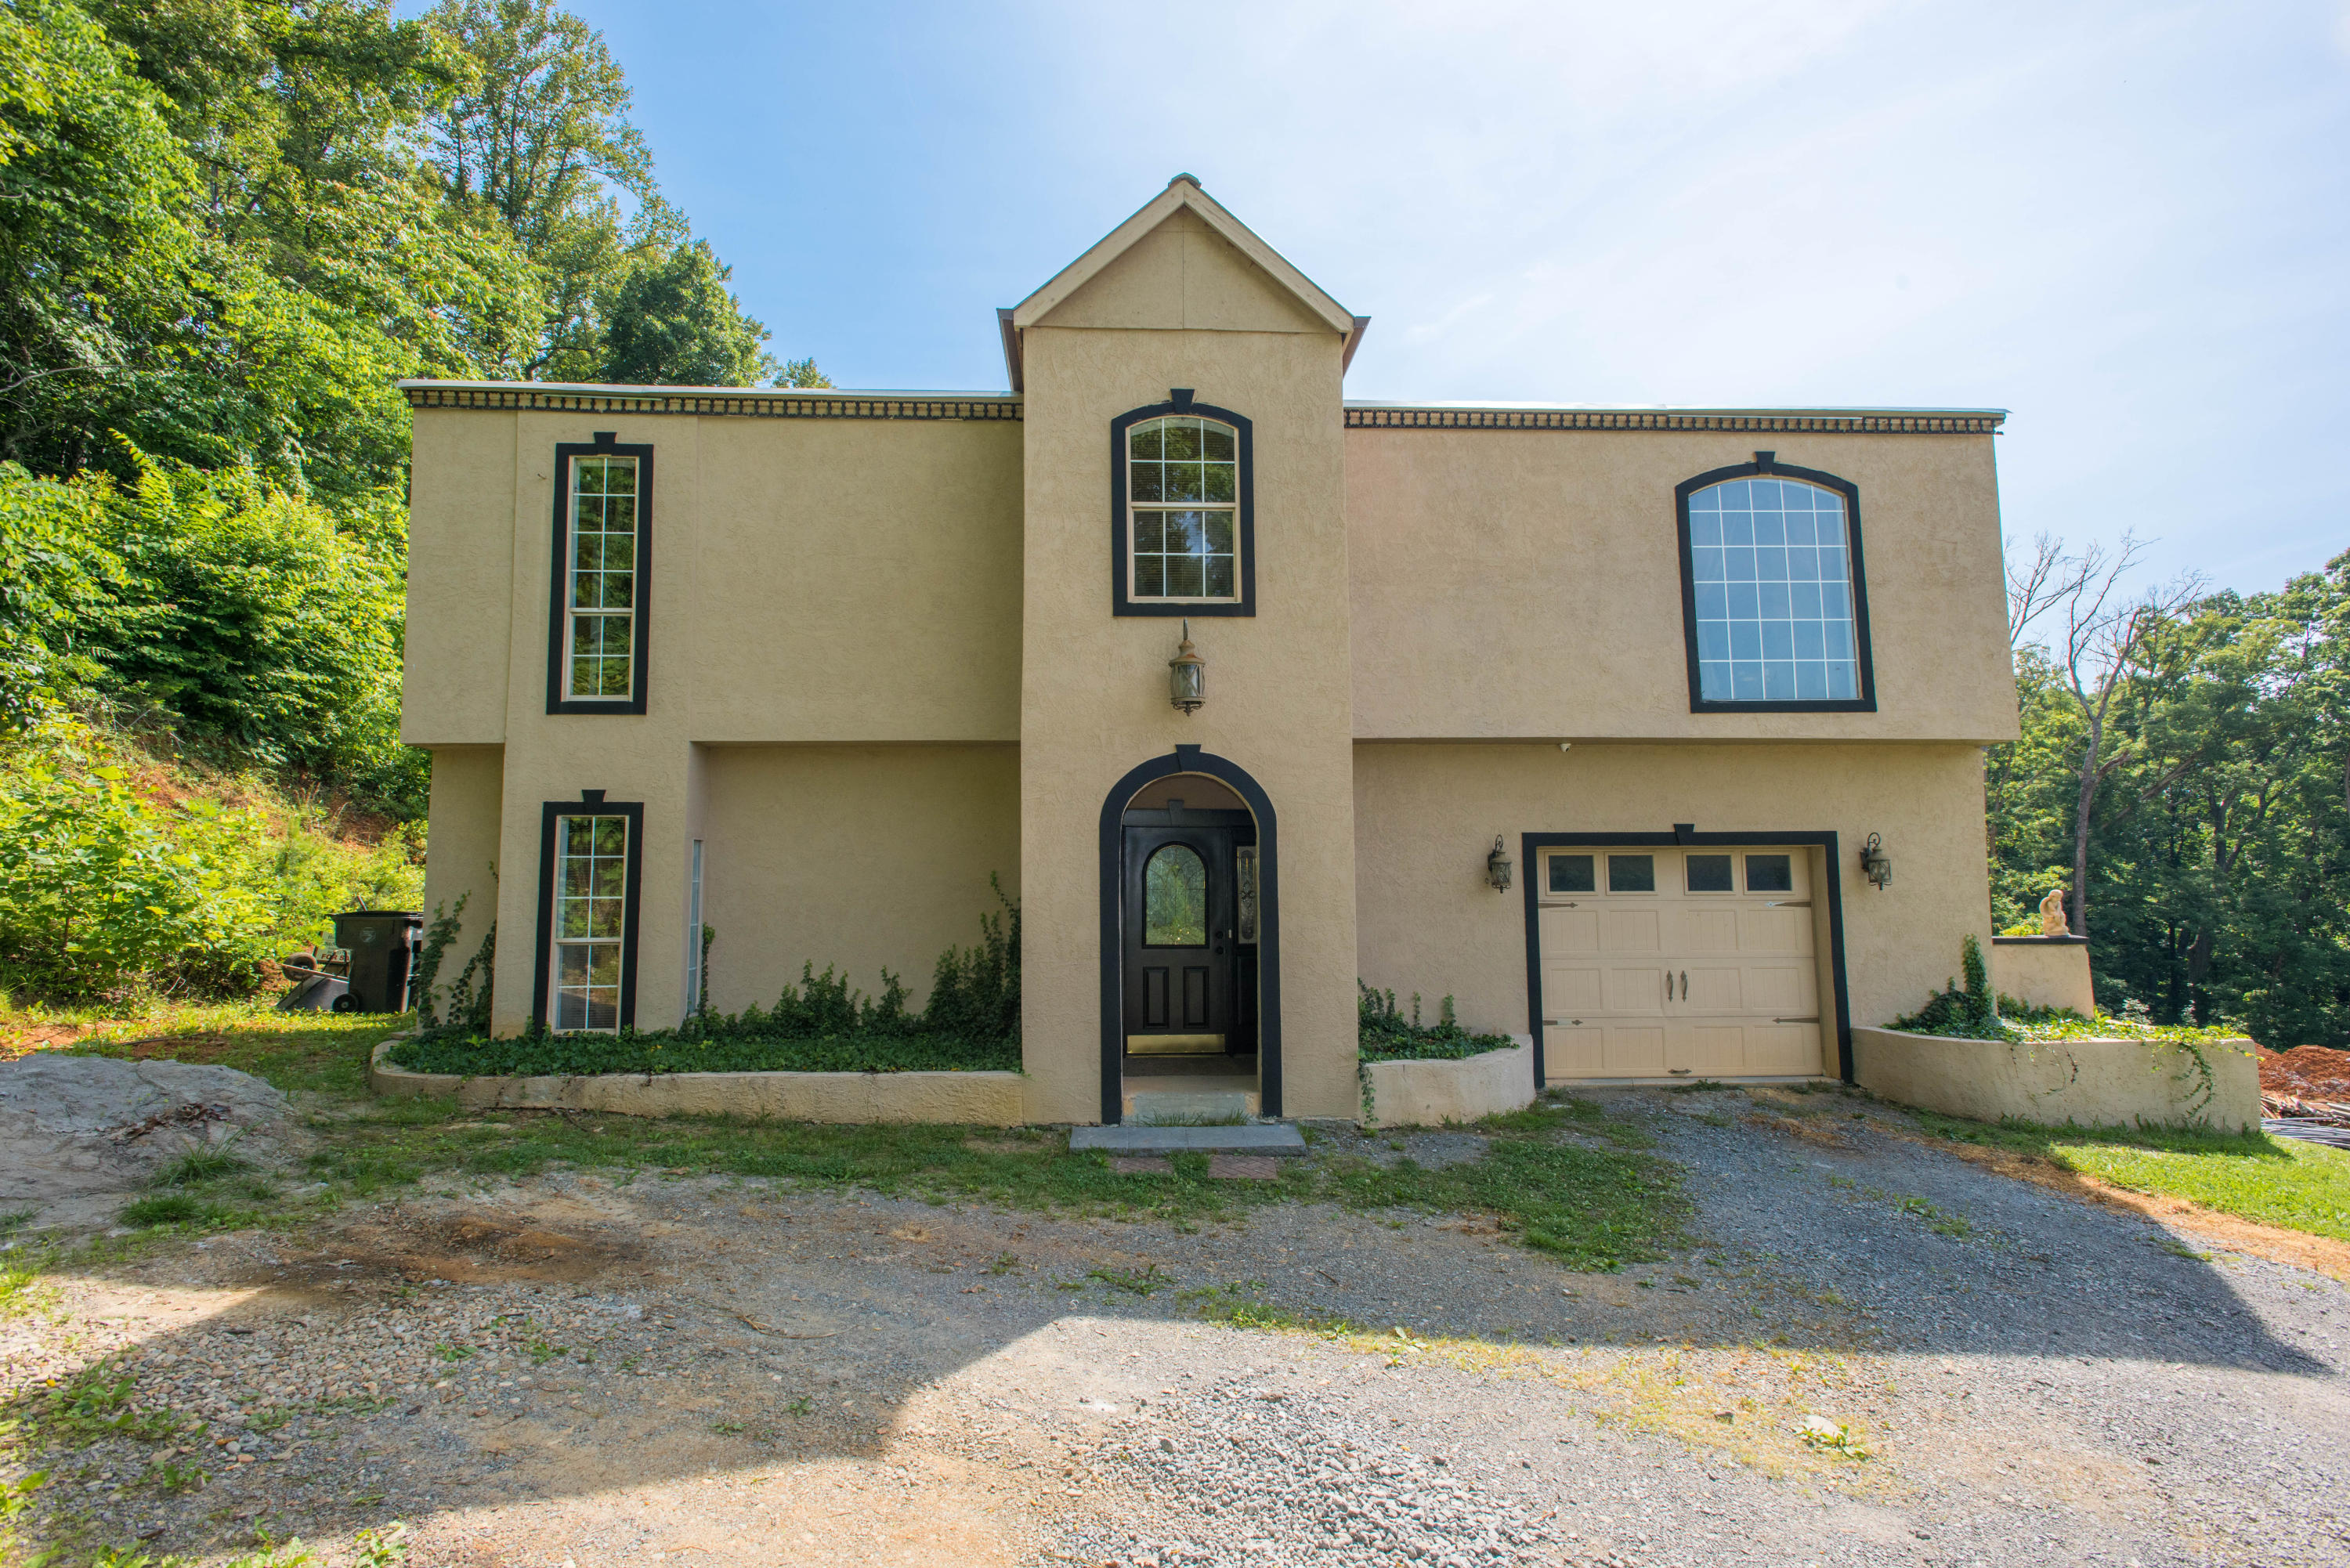 333 Seville Rd, Morristown, Tennessee 37813, 3 Bedrooms Bedrooms, ,3 BathroomsBathrooms,Single Family,For Sale,Seville,1057169